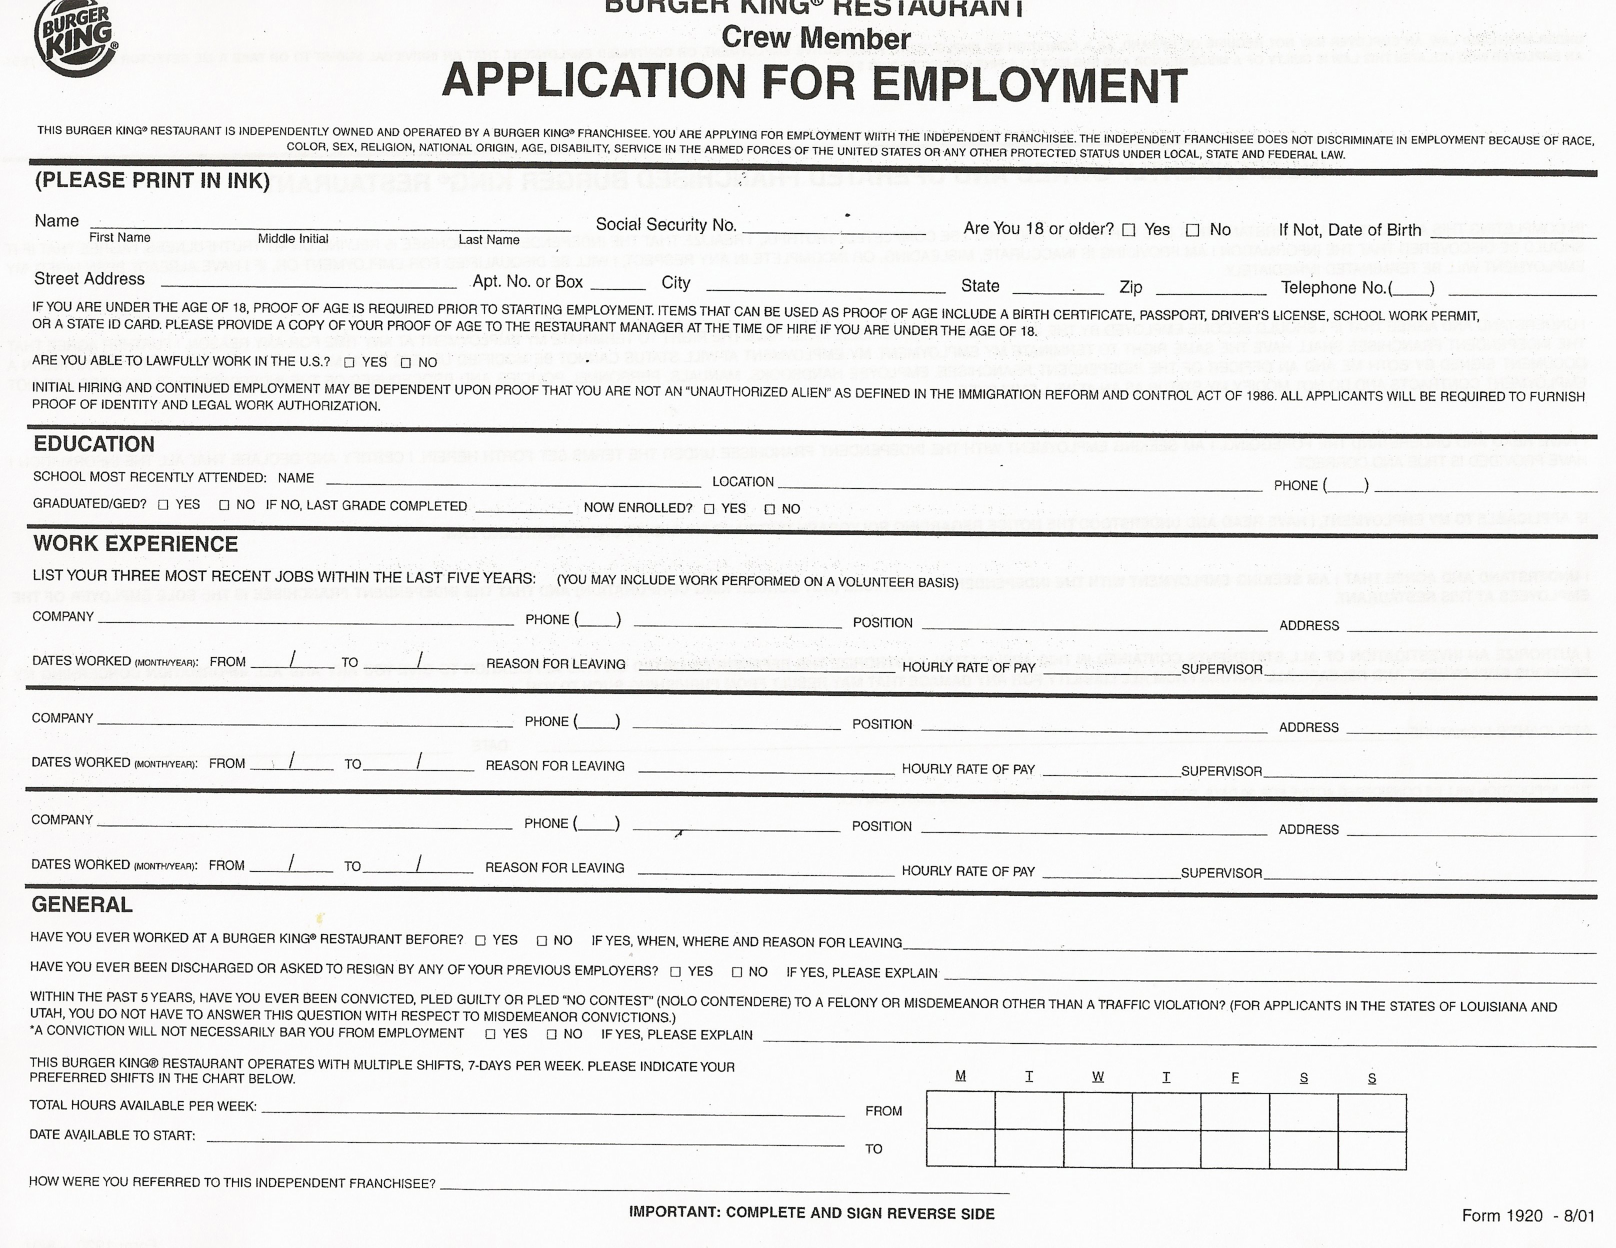 standard job application form standard application for job application printable job applications printable job application nq9ifp1h more